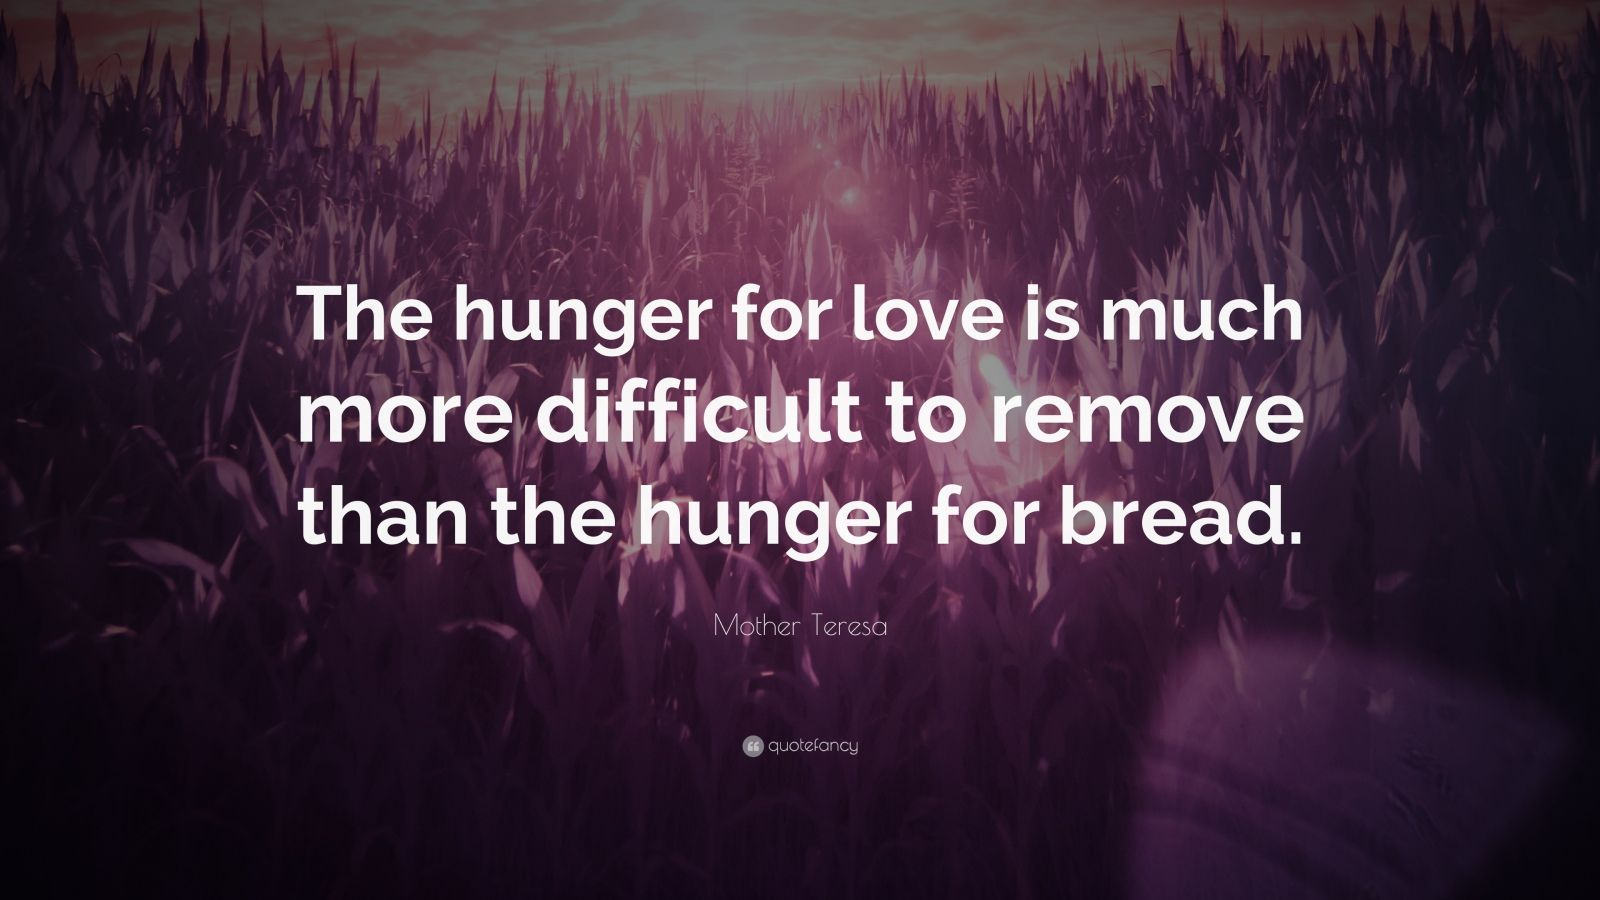 Quotes About Hunger The Hunger For Love Quote  Inspiring Quotes And Words In Life